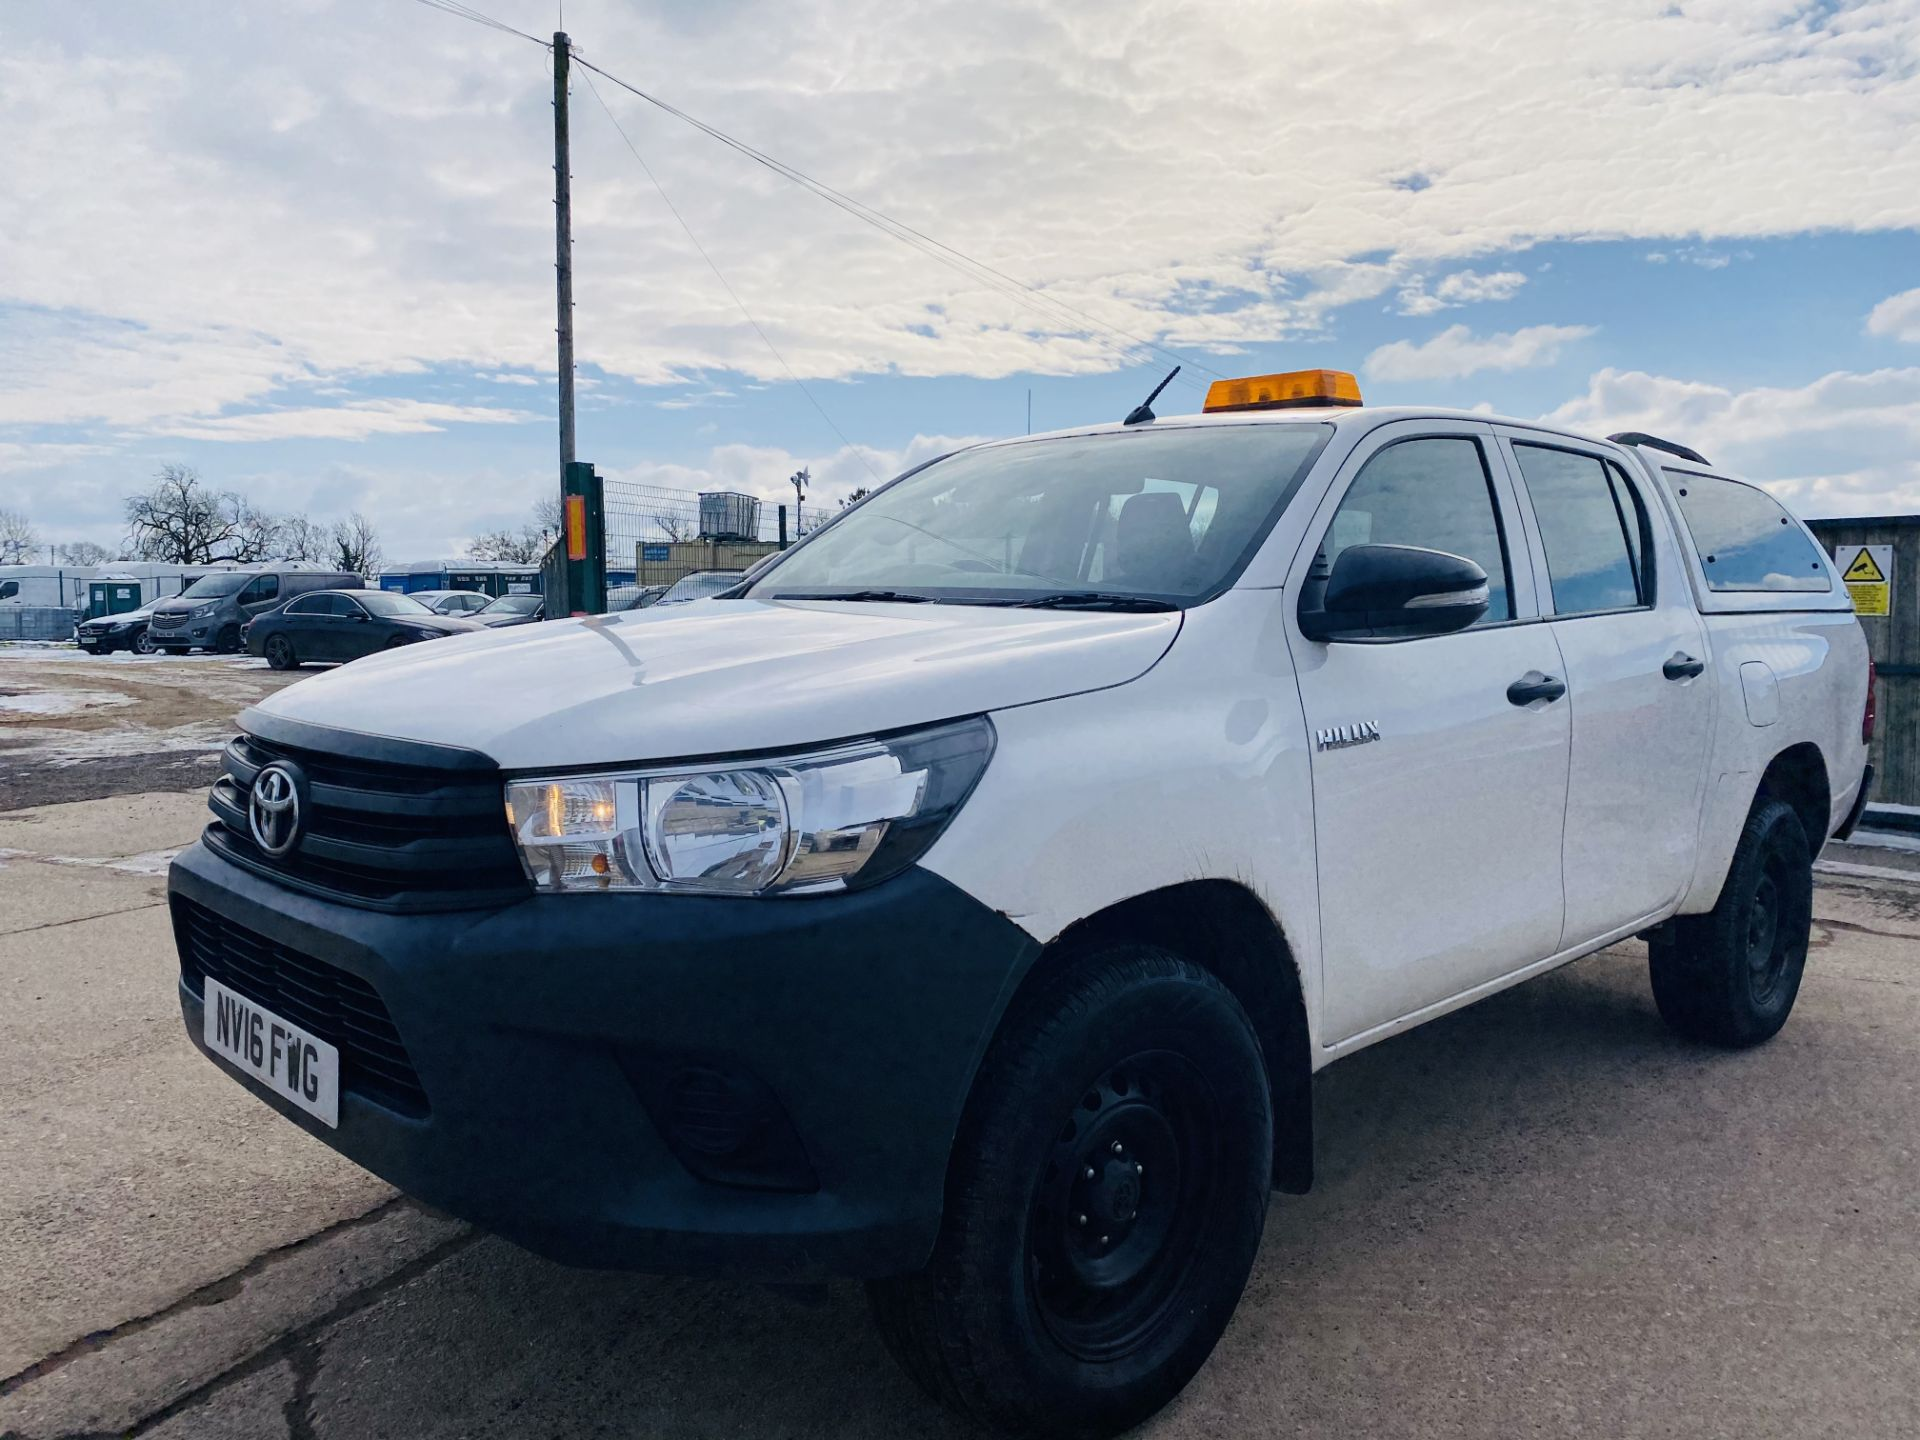 """TOYOTA HILUX """"ACTIVE"""" DOUBLE CAB PICK-UP (2016 - NEW MODEL) 1 OWNER - AIR CON - REAR CANOPY- LOOK - Image 4 of 19"""